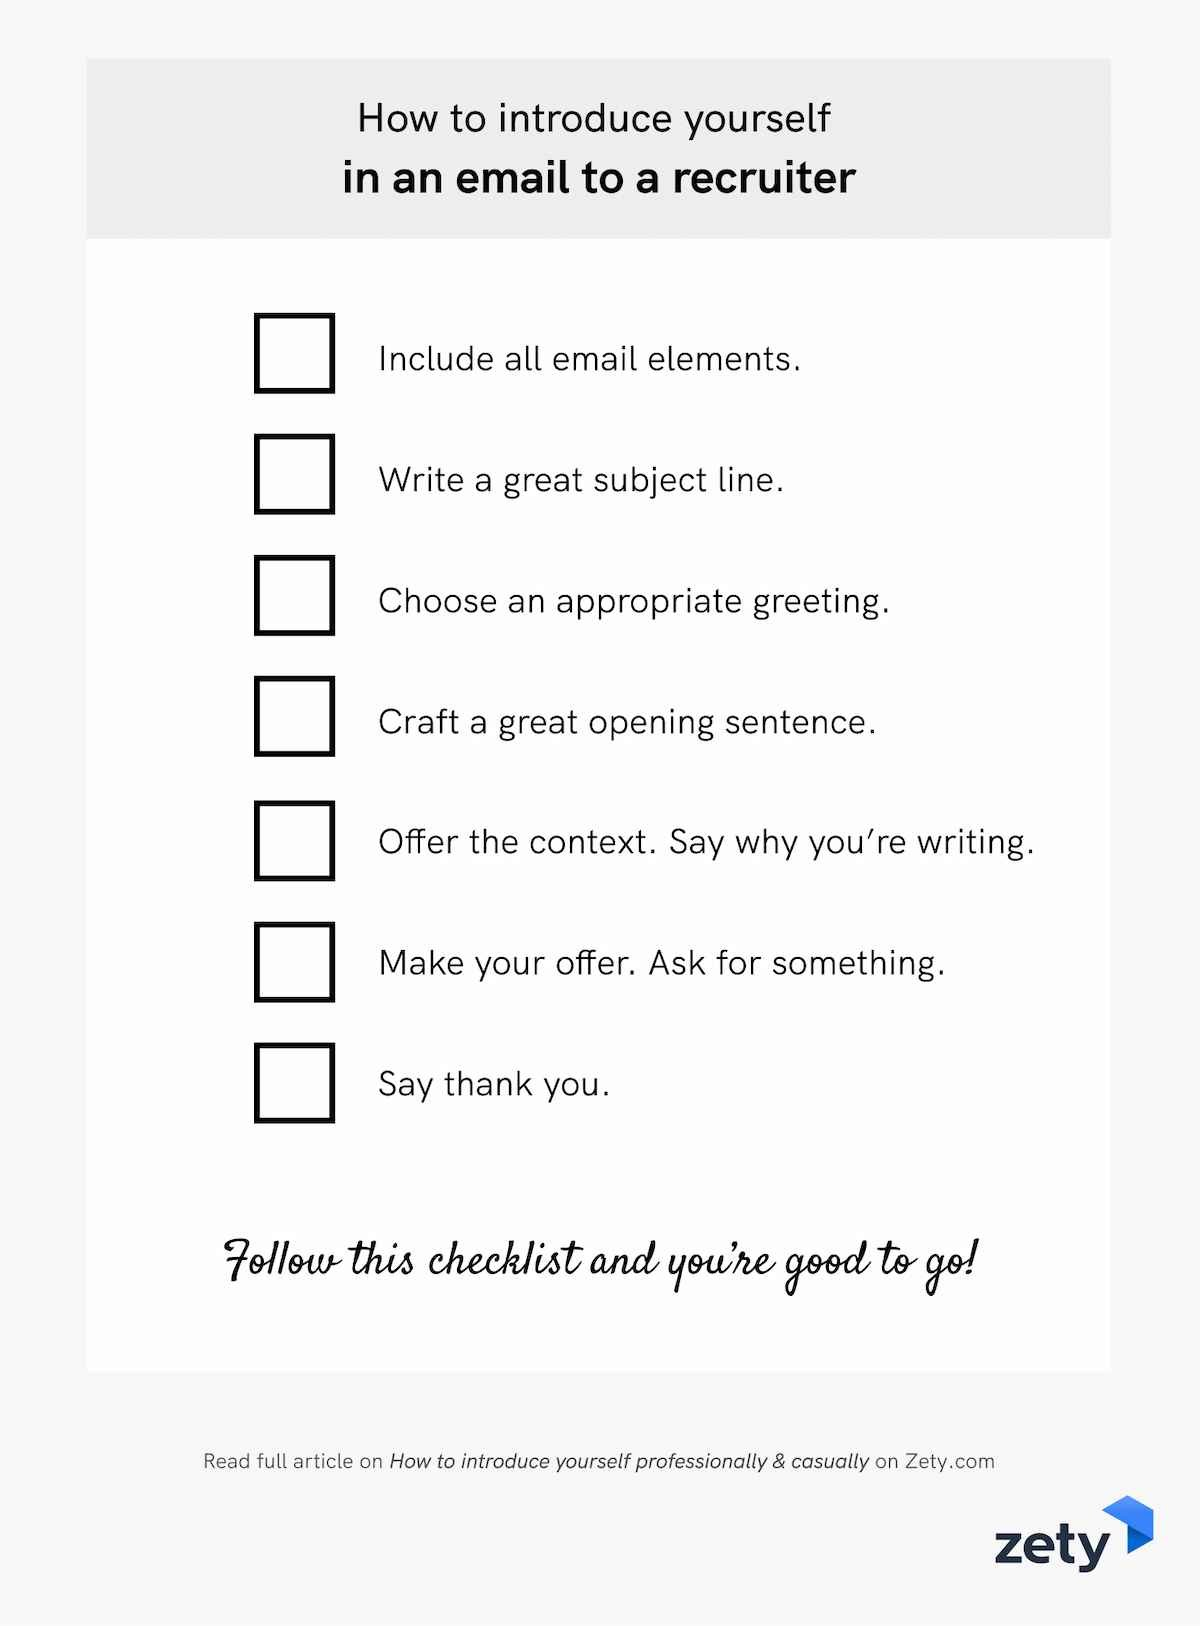 How to introduce yourself in an email to a recruiter - Checklist